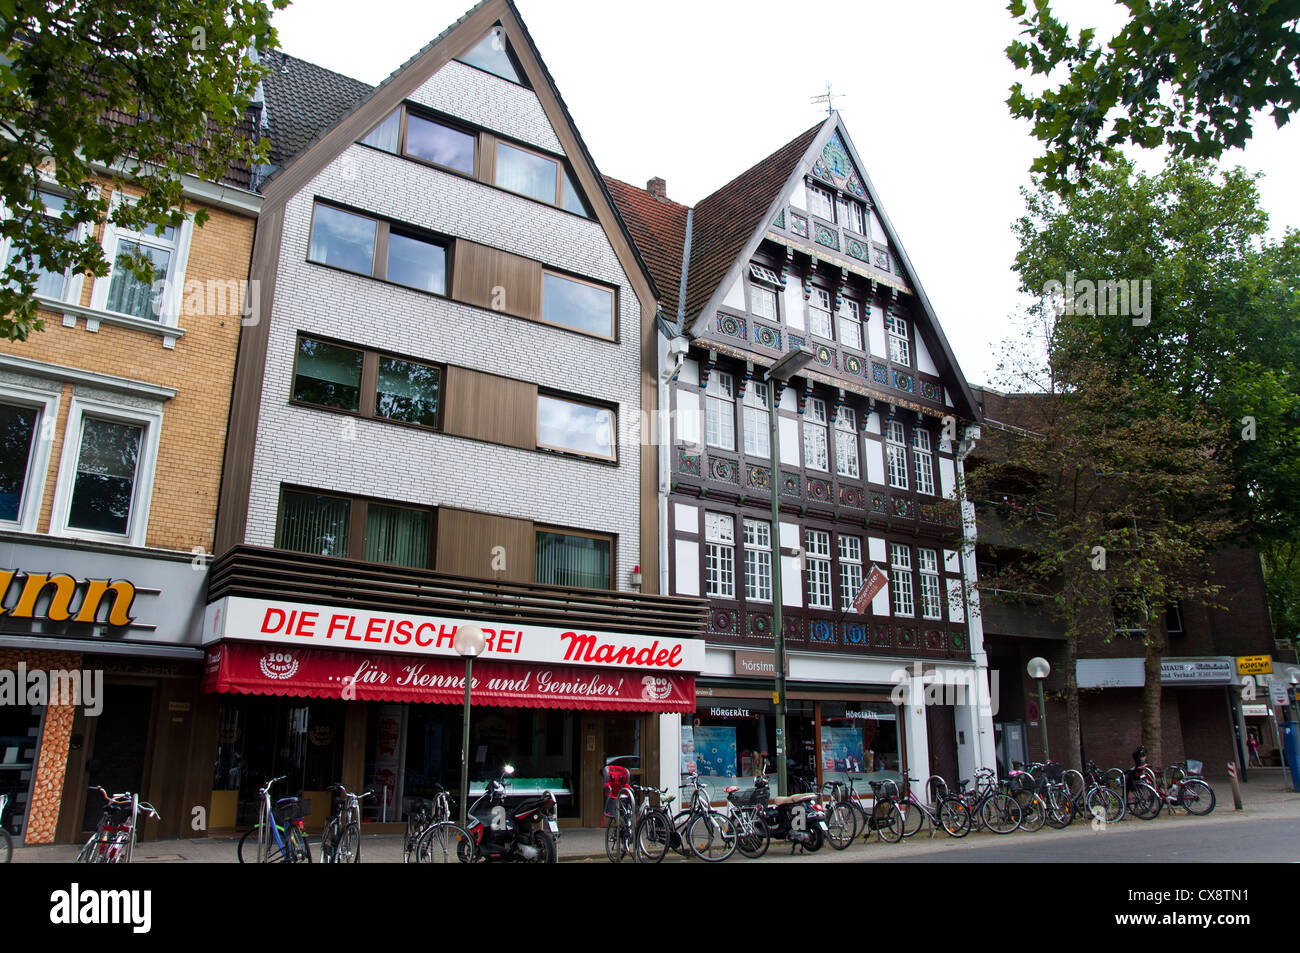 Medieval Timbered Fachwerk House, Osnabruck, Germany - Stock Image